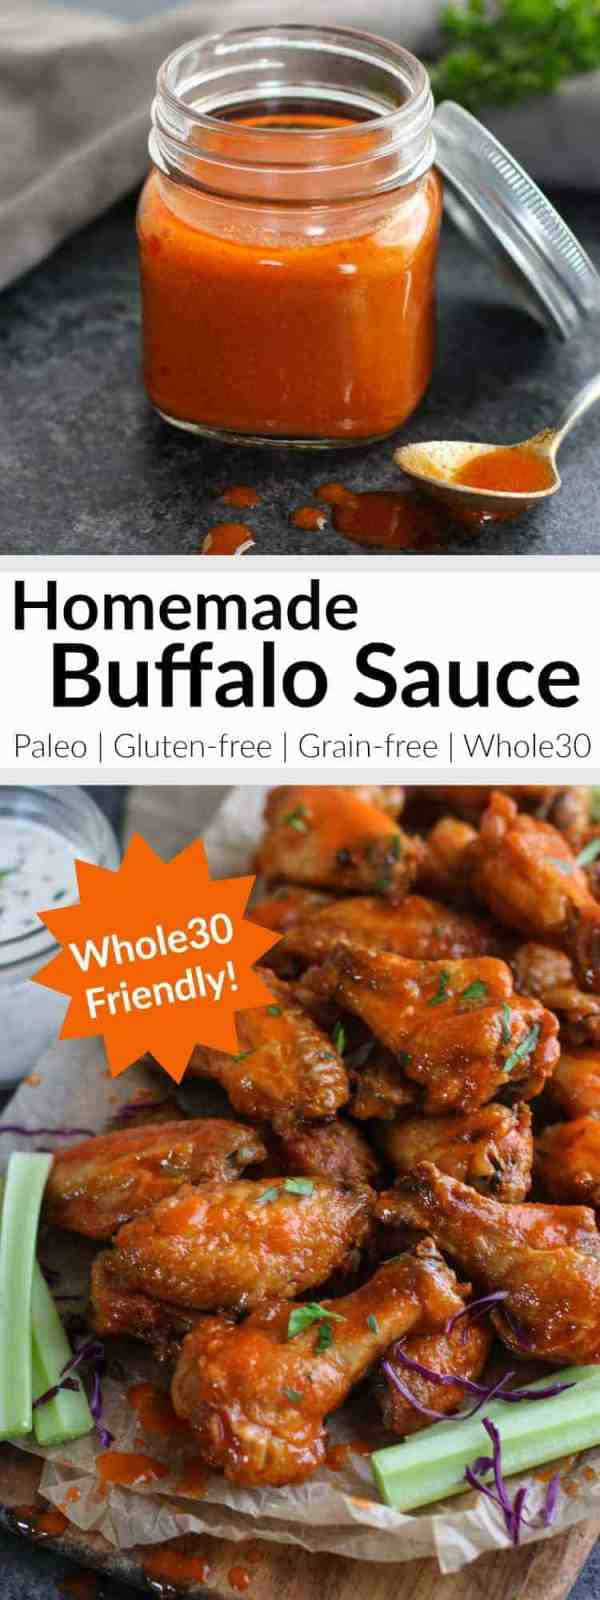 Whole30 Homemade Buffalo Sauce | 5-ingredient Homemade Buffalo Sauce for alllll the things! | Whole30 | Paleo | Gluten-free | https://therealfoodrds.com/homemade-buffalo-sauce-whole30/